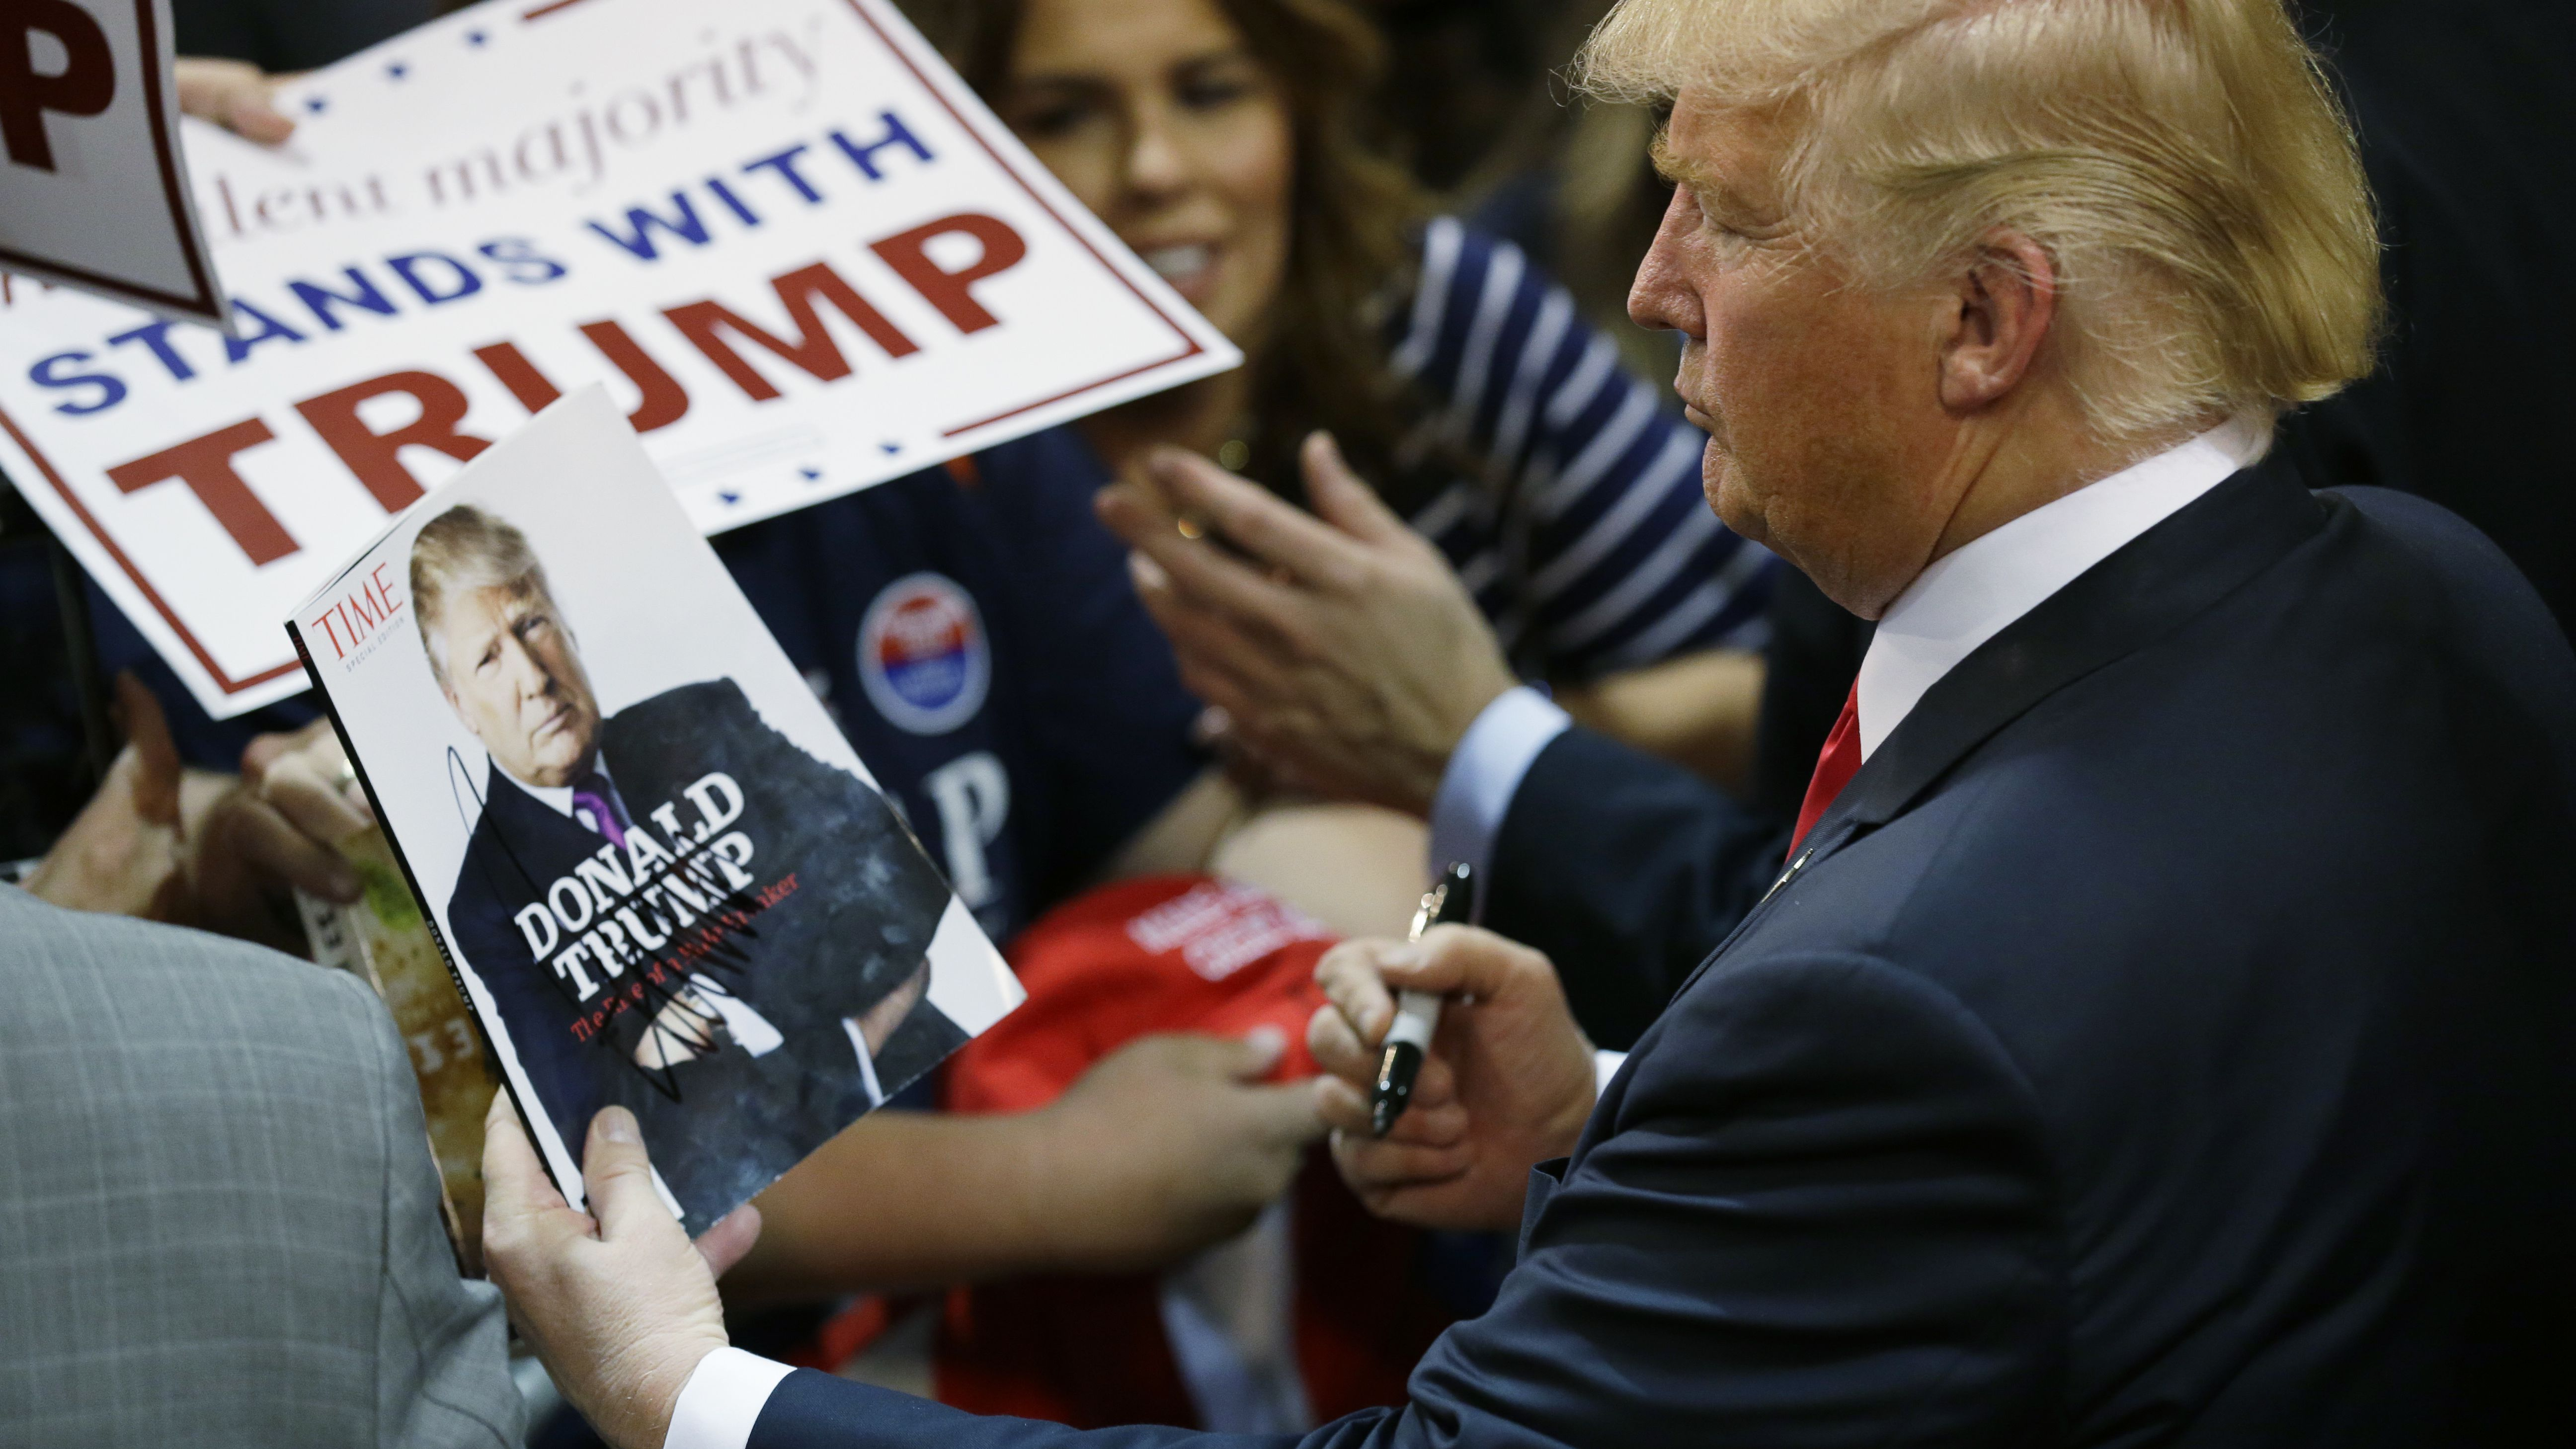 Donald Trump looks at his photo on a magazine cover as he signs autographs during a rally in Eugene, Ore. in 2016.